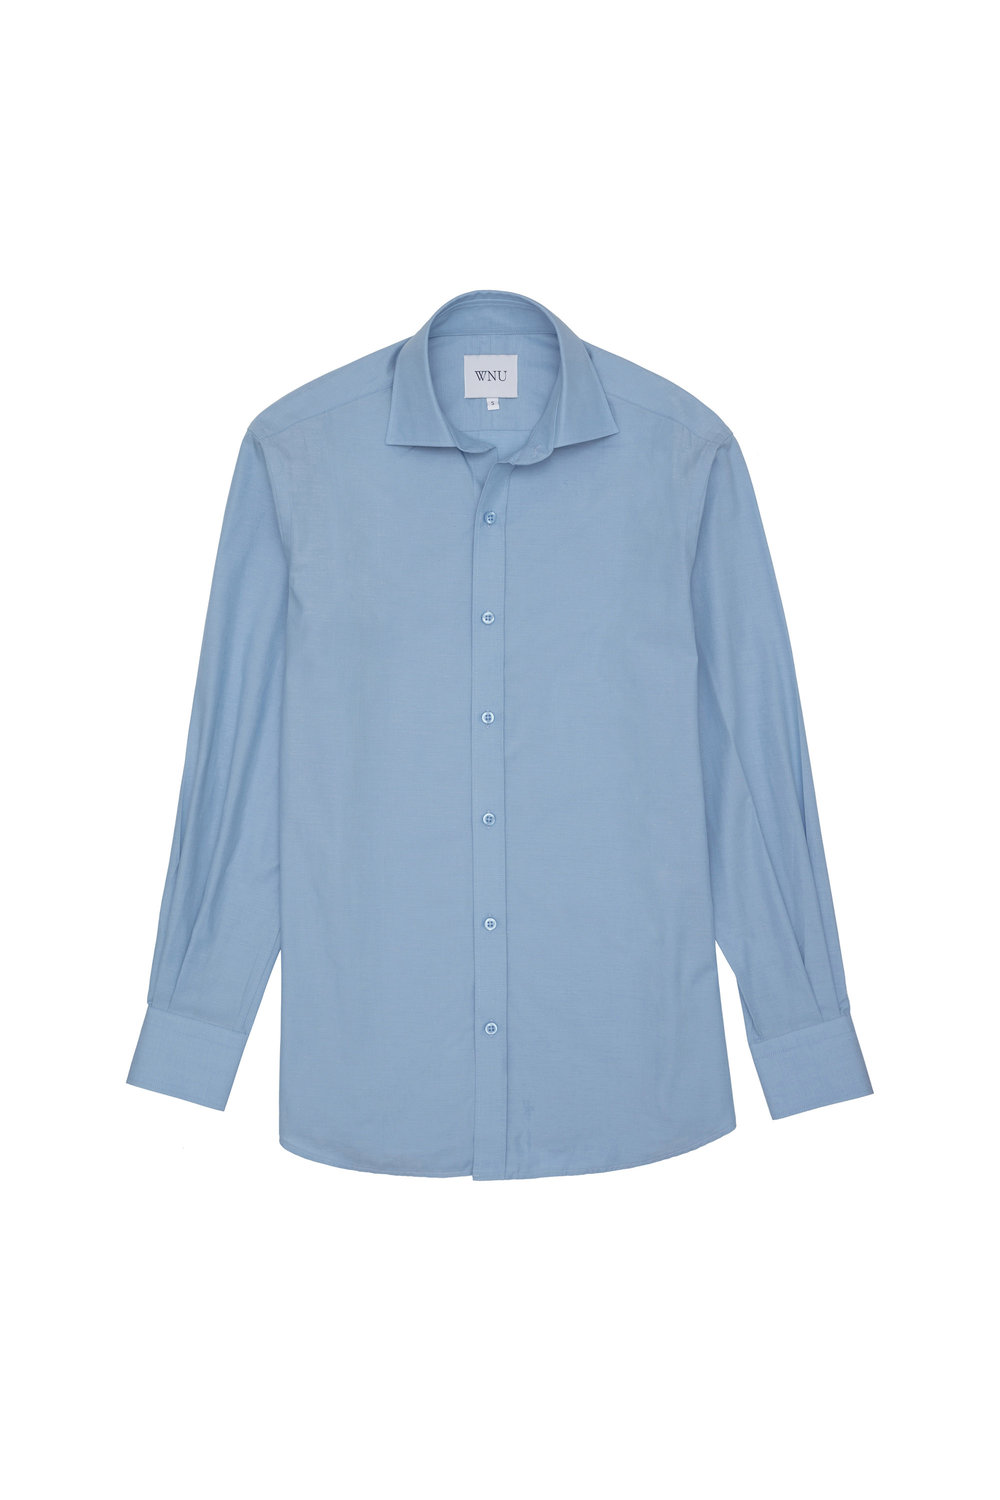 8. Blue With Nothing Underneath shirt, £80